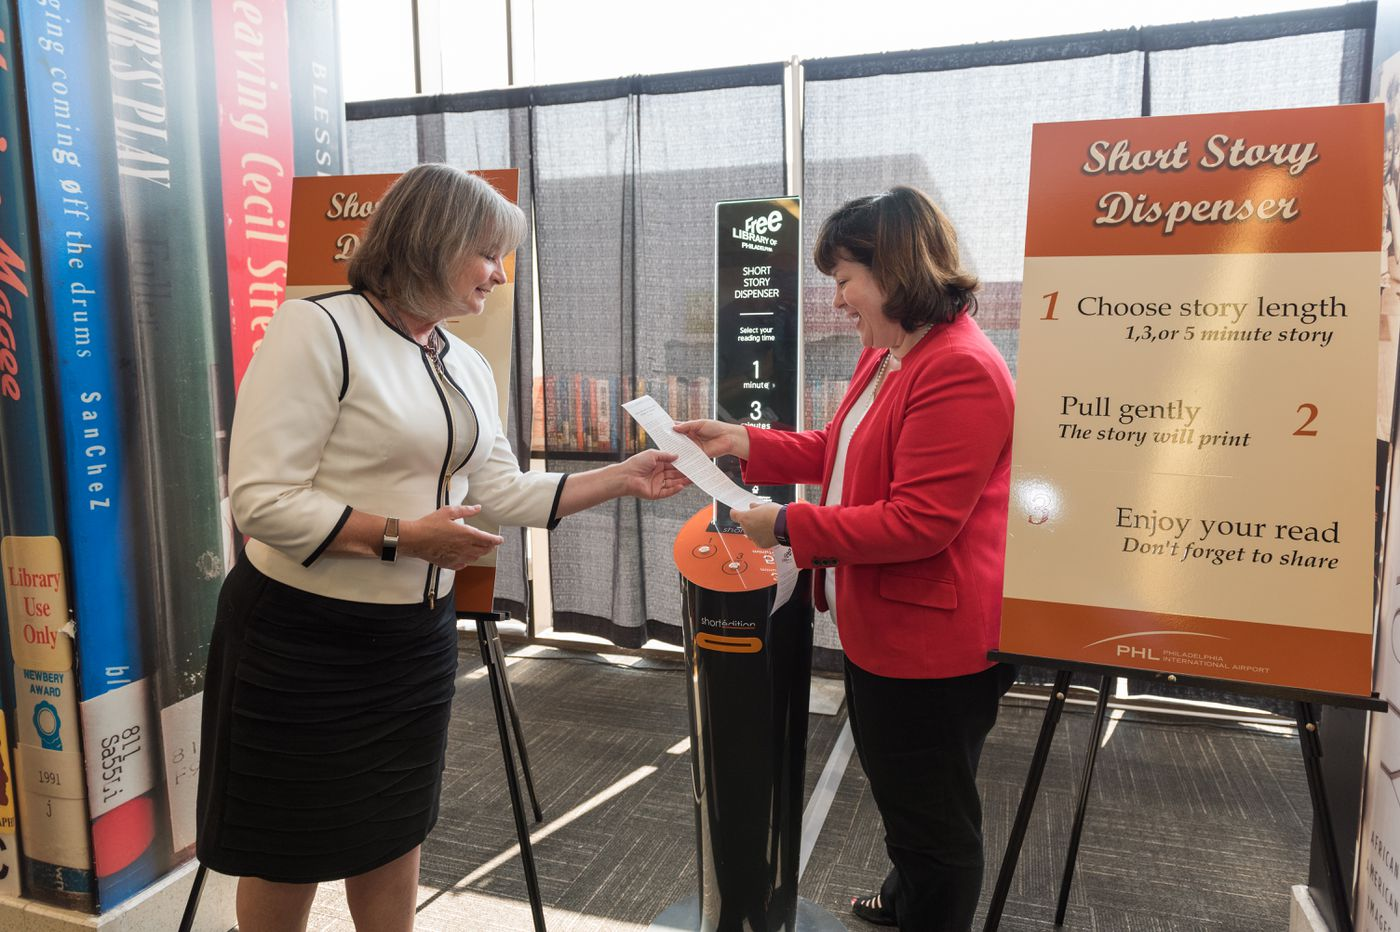 Short Story Dispenser unveiled at Philadelphia International Airport